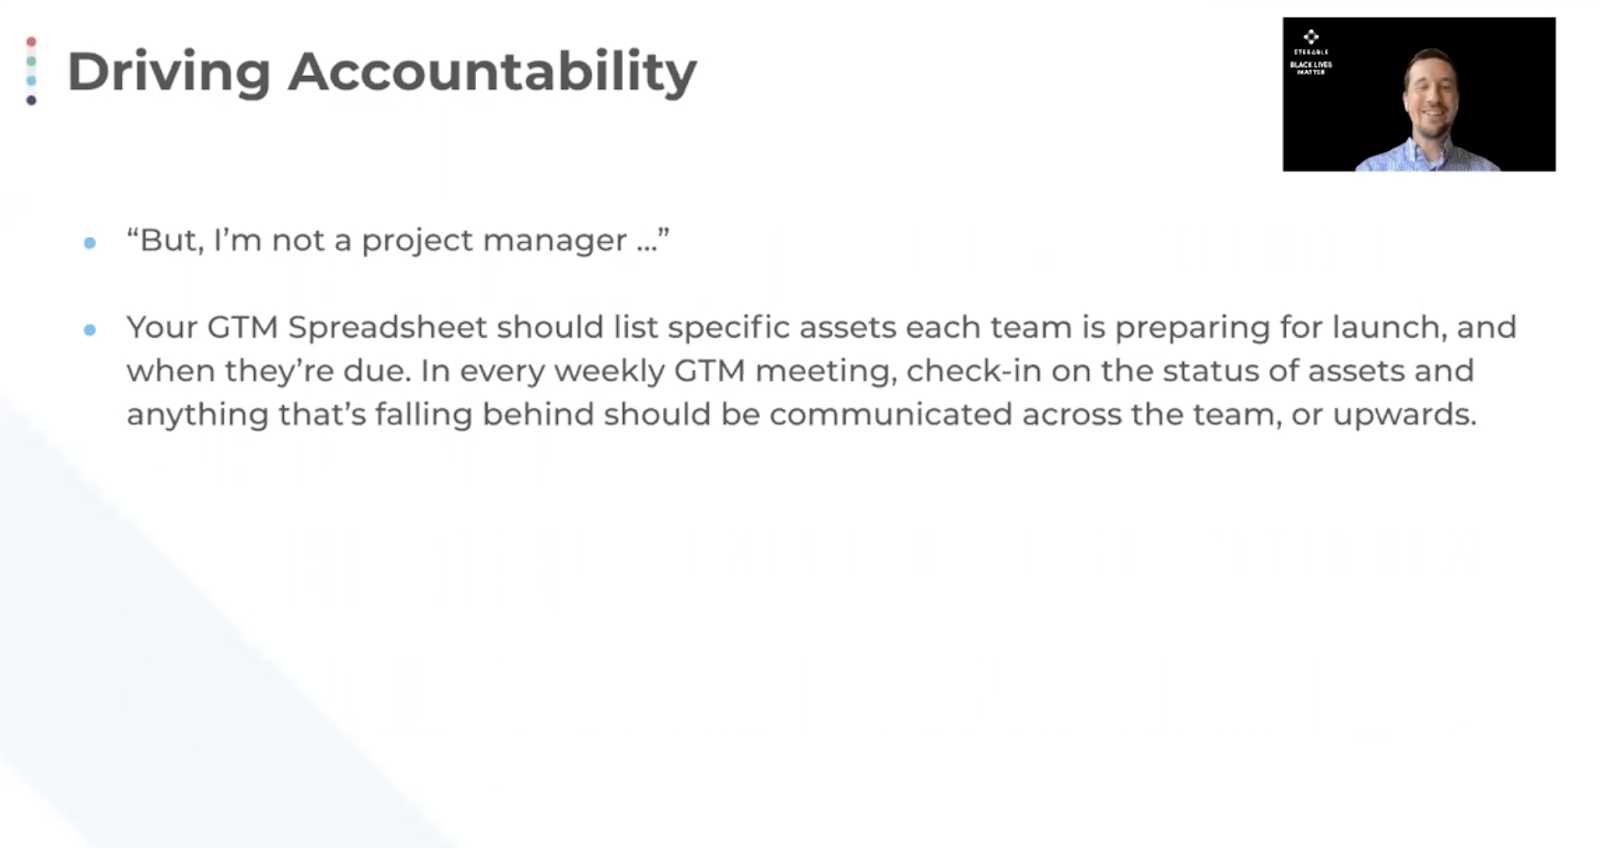 Drive accountability within your team; this'll improve output and performance.